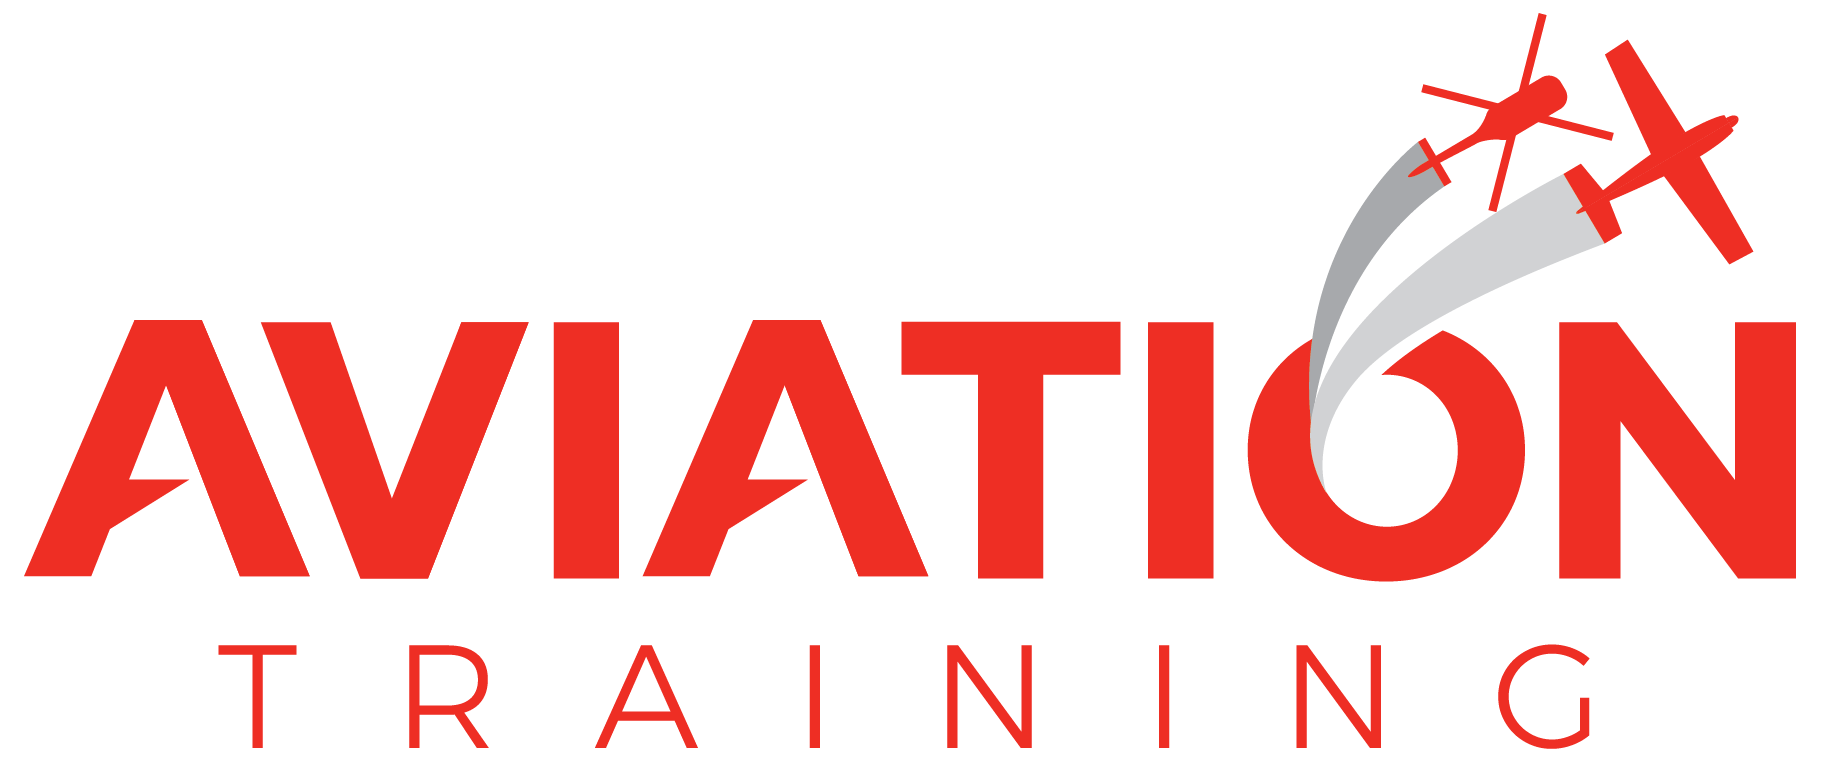 Aviation Training Limited